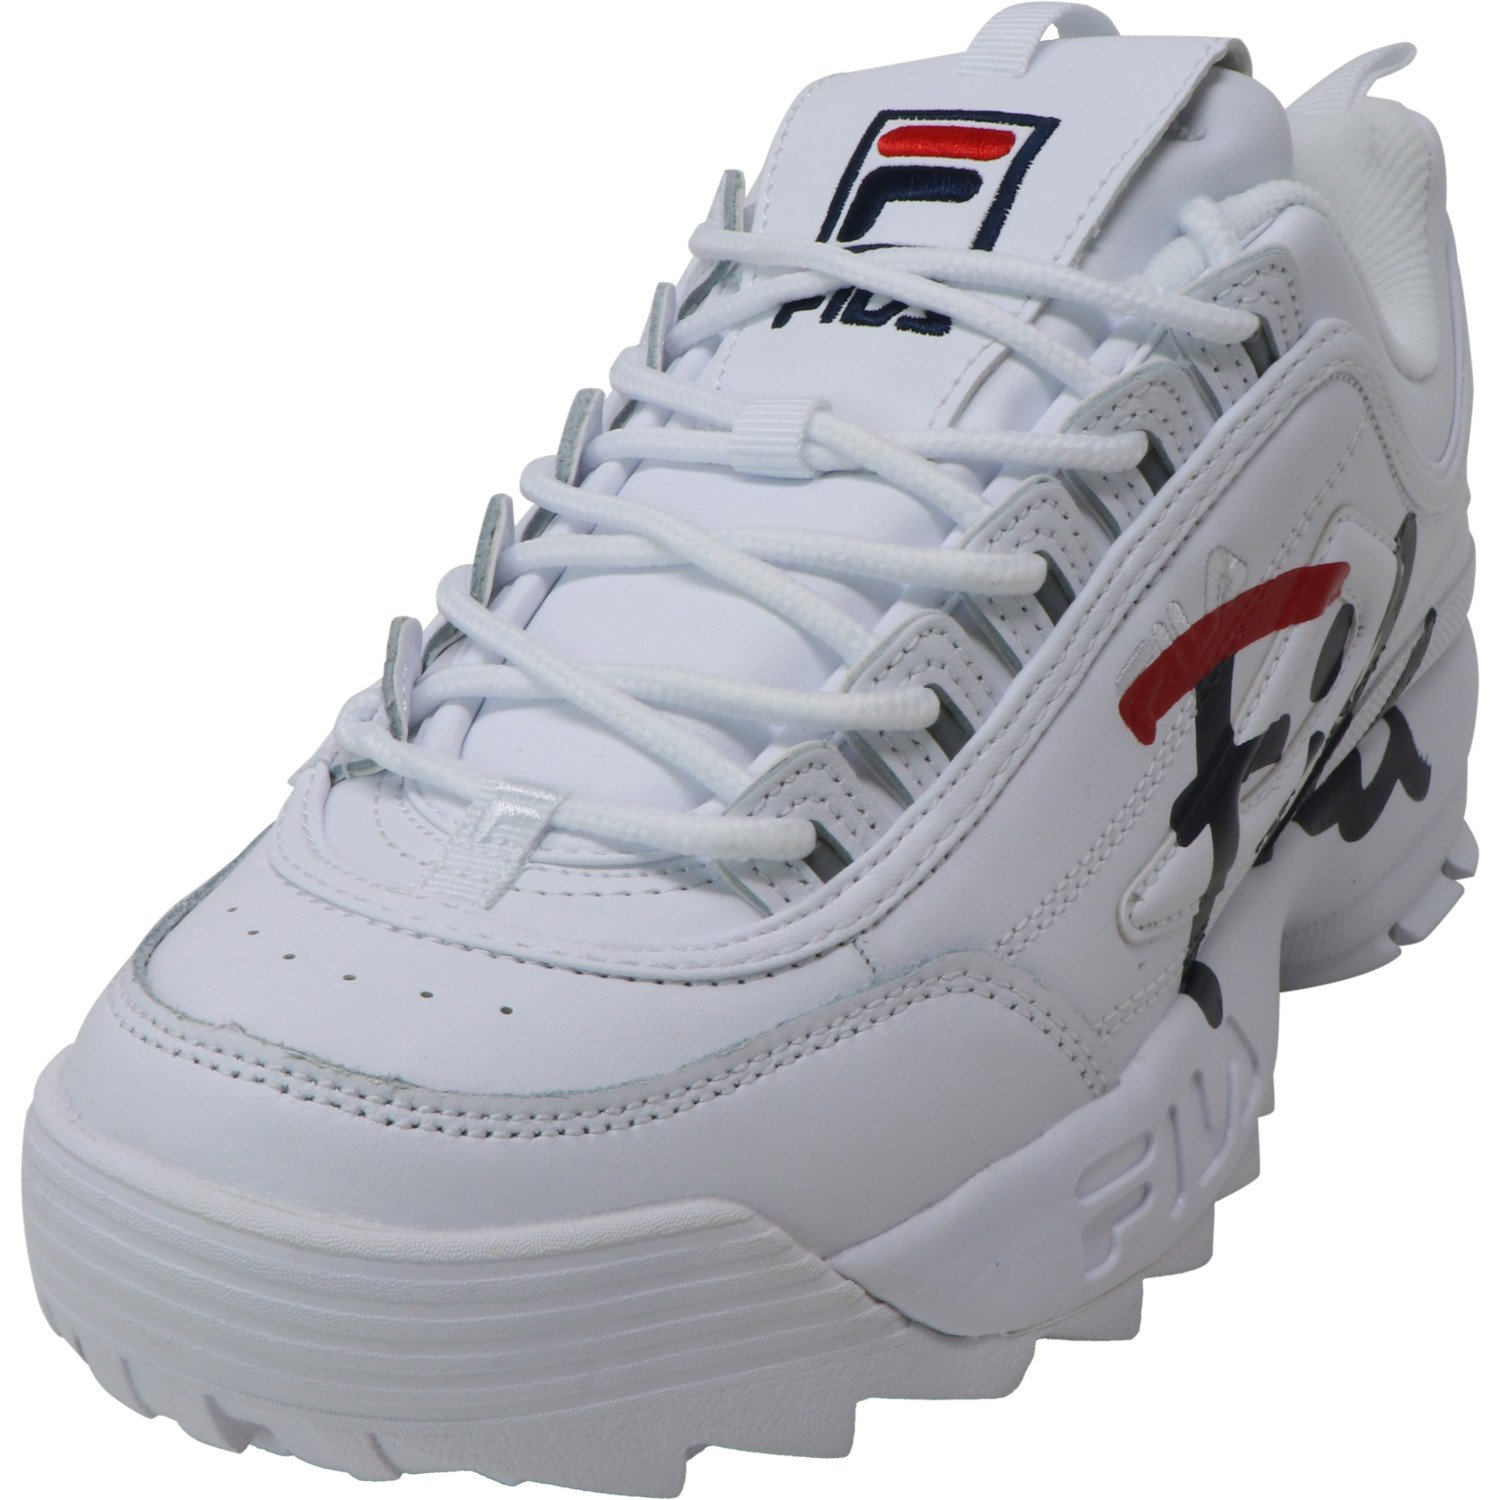 Fila Fila Women's Disruptor Ii Script White Navy Red